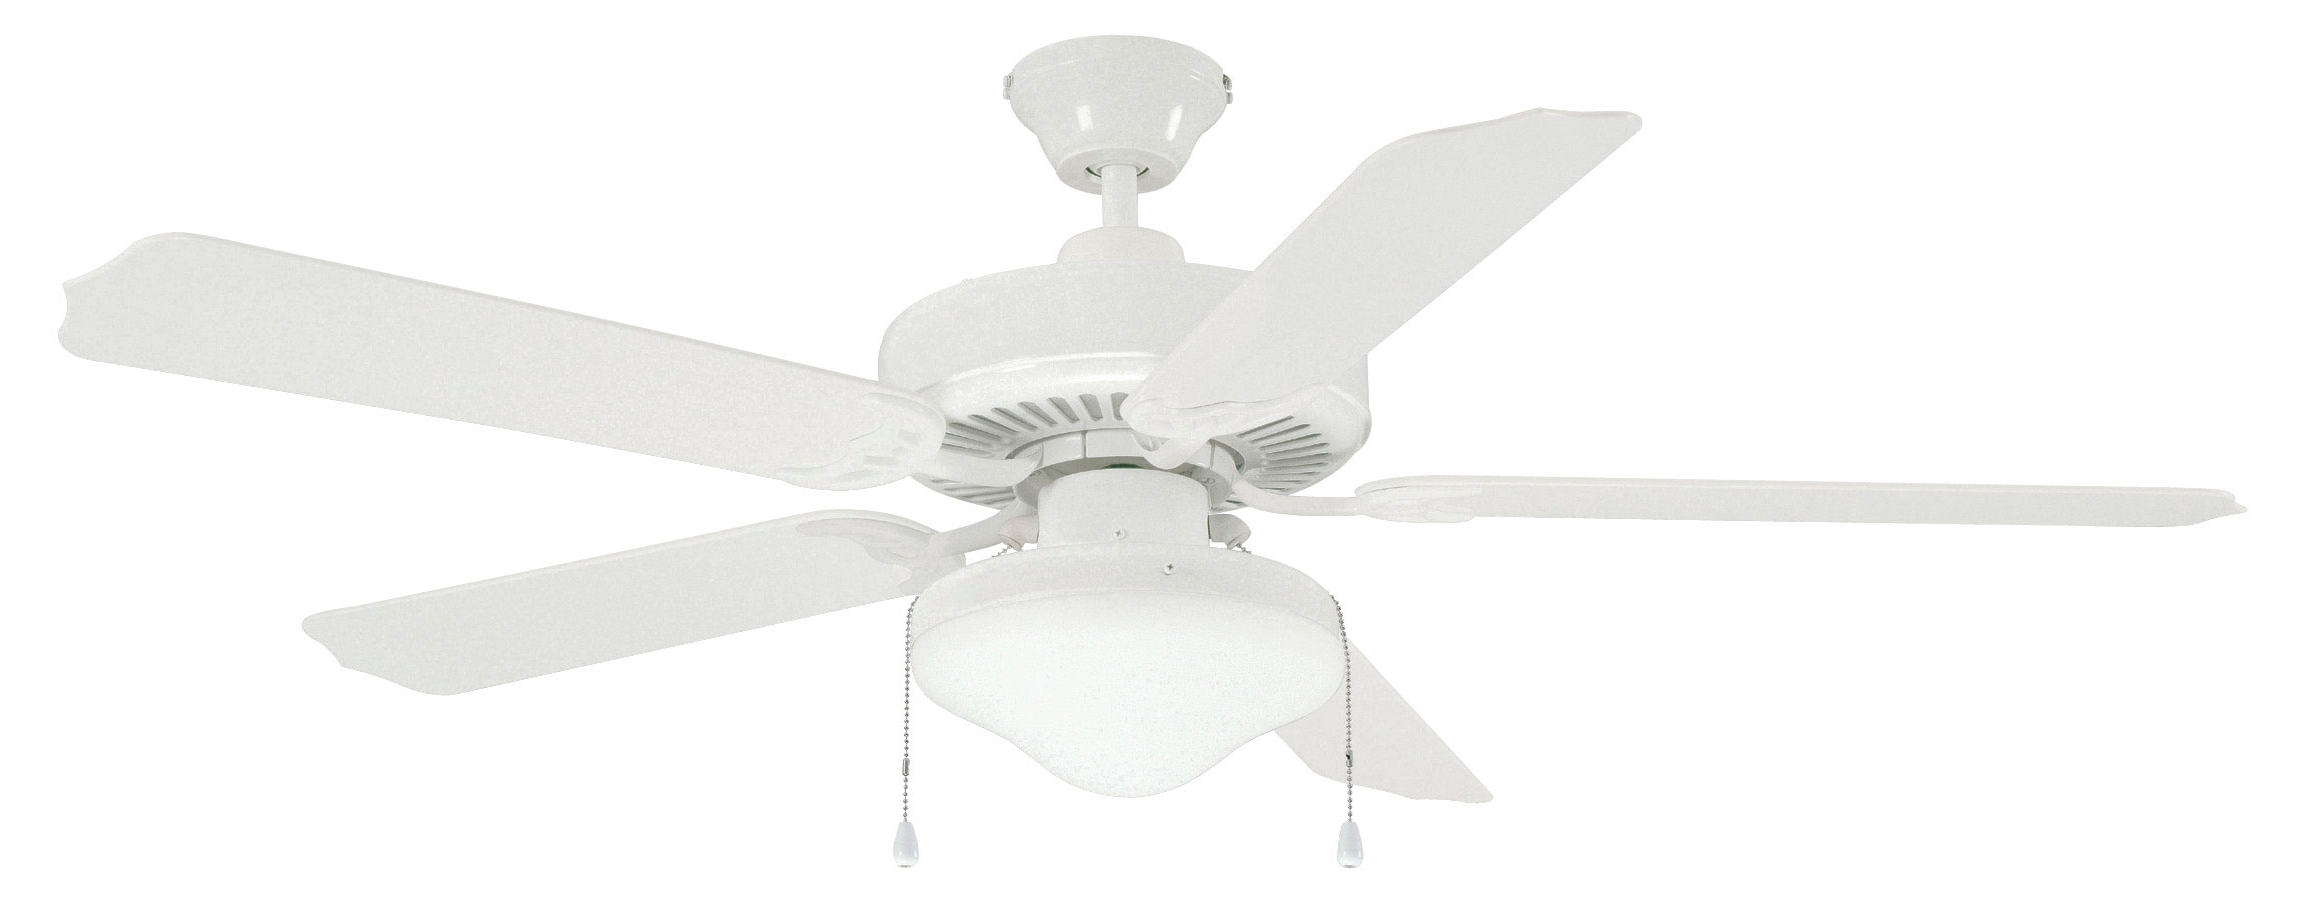 Favorite White Outdoor Ceiling Fans With Lights For Ceiling Fans White Ceiling Fan With Light Cruise Outdoor Wet Rated (View 4 of 20)